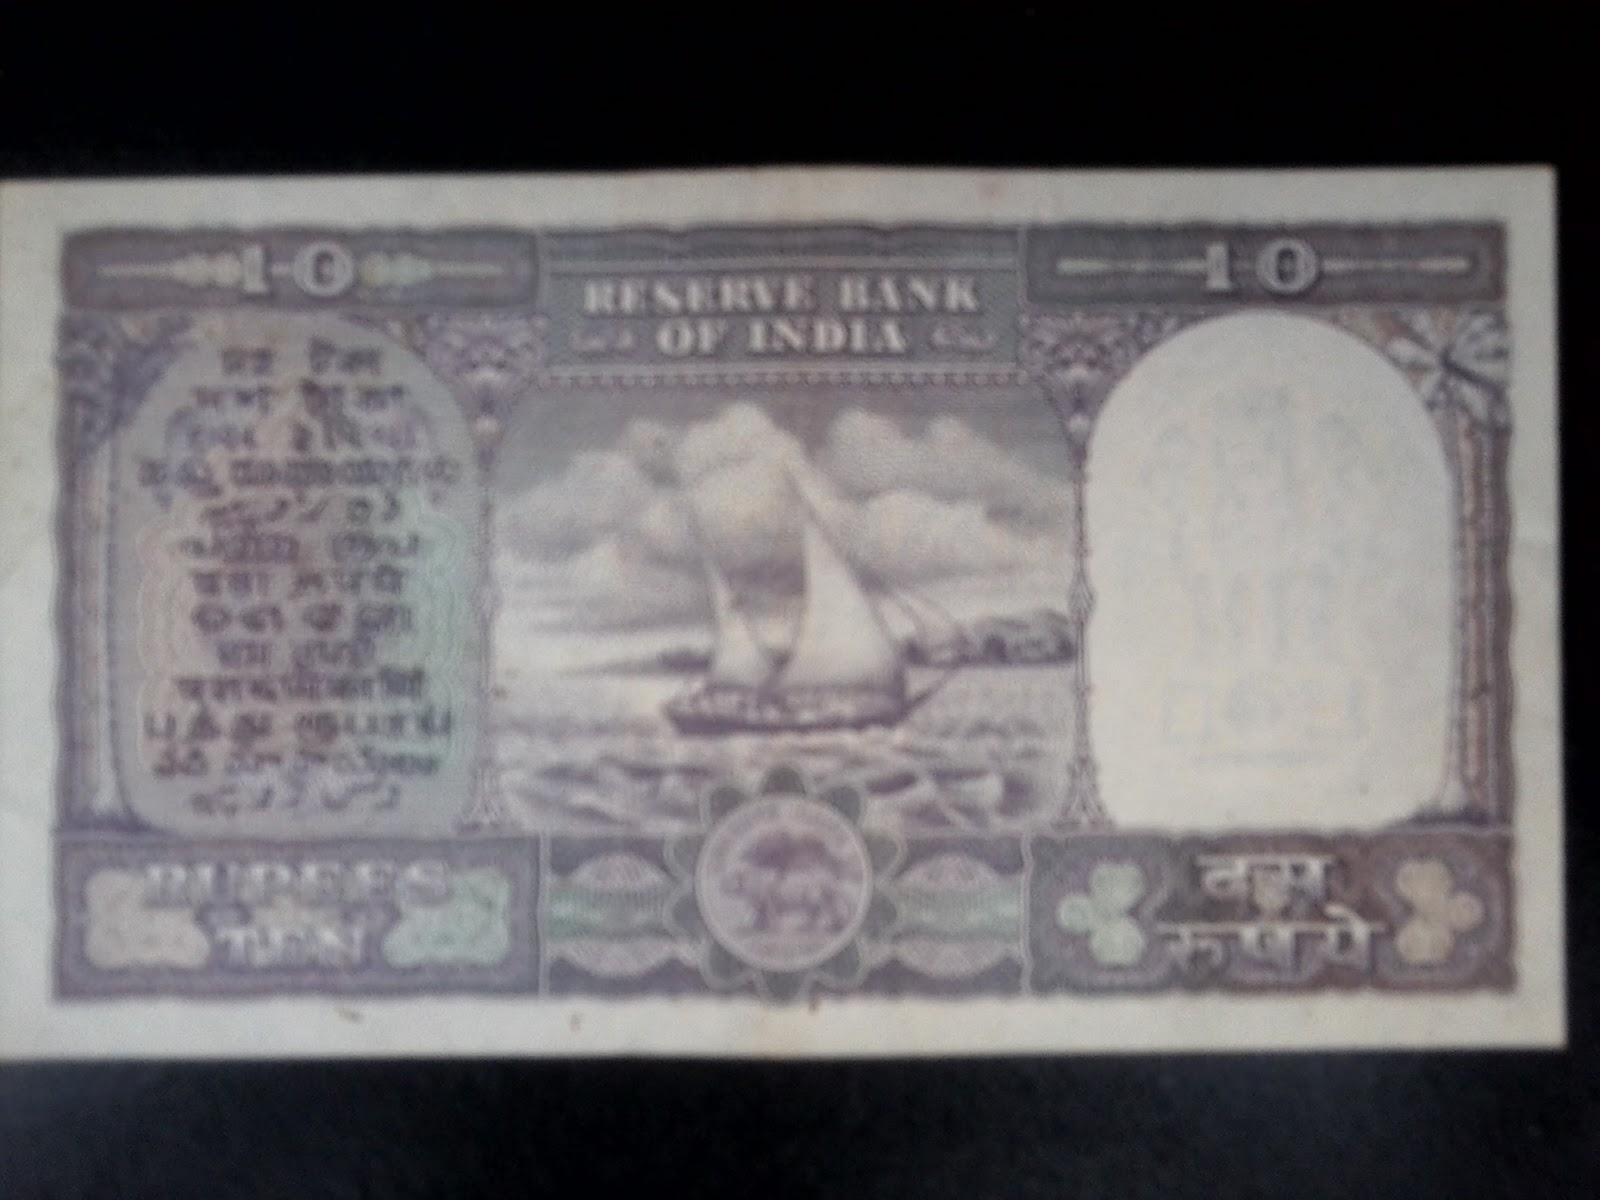 Rupee Note Size 10 Rupee Ship Old Note